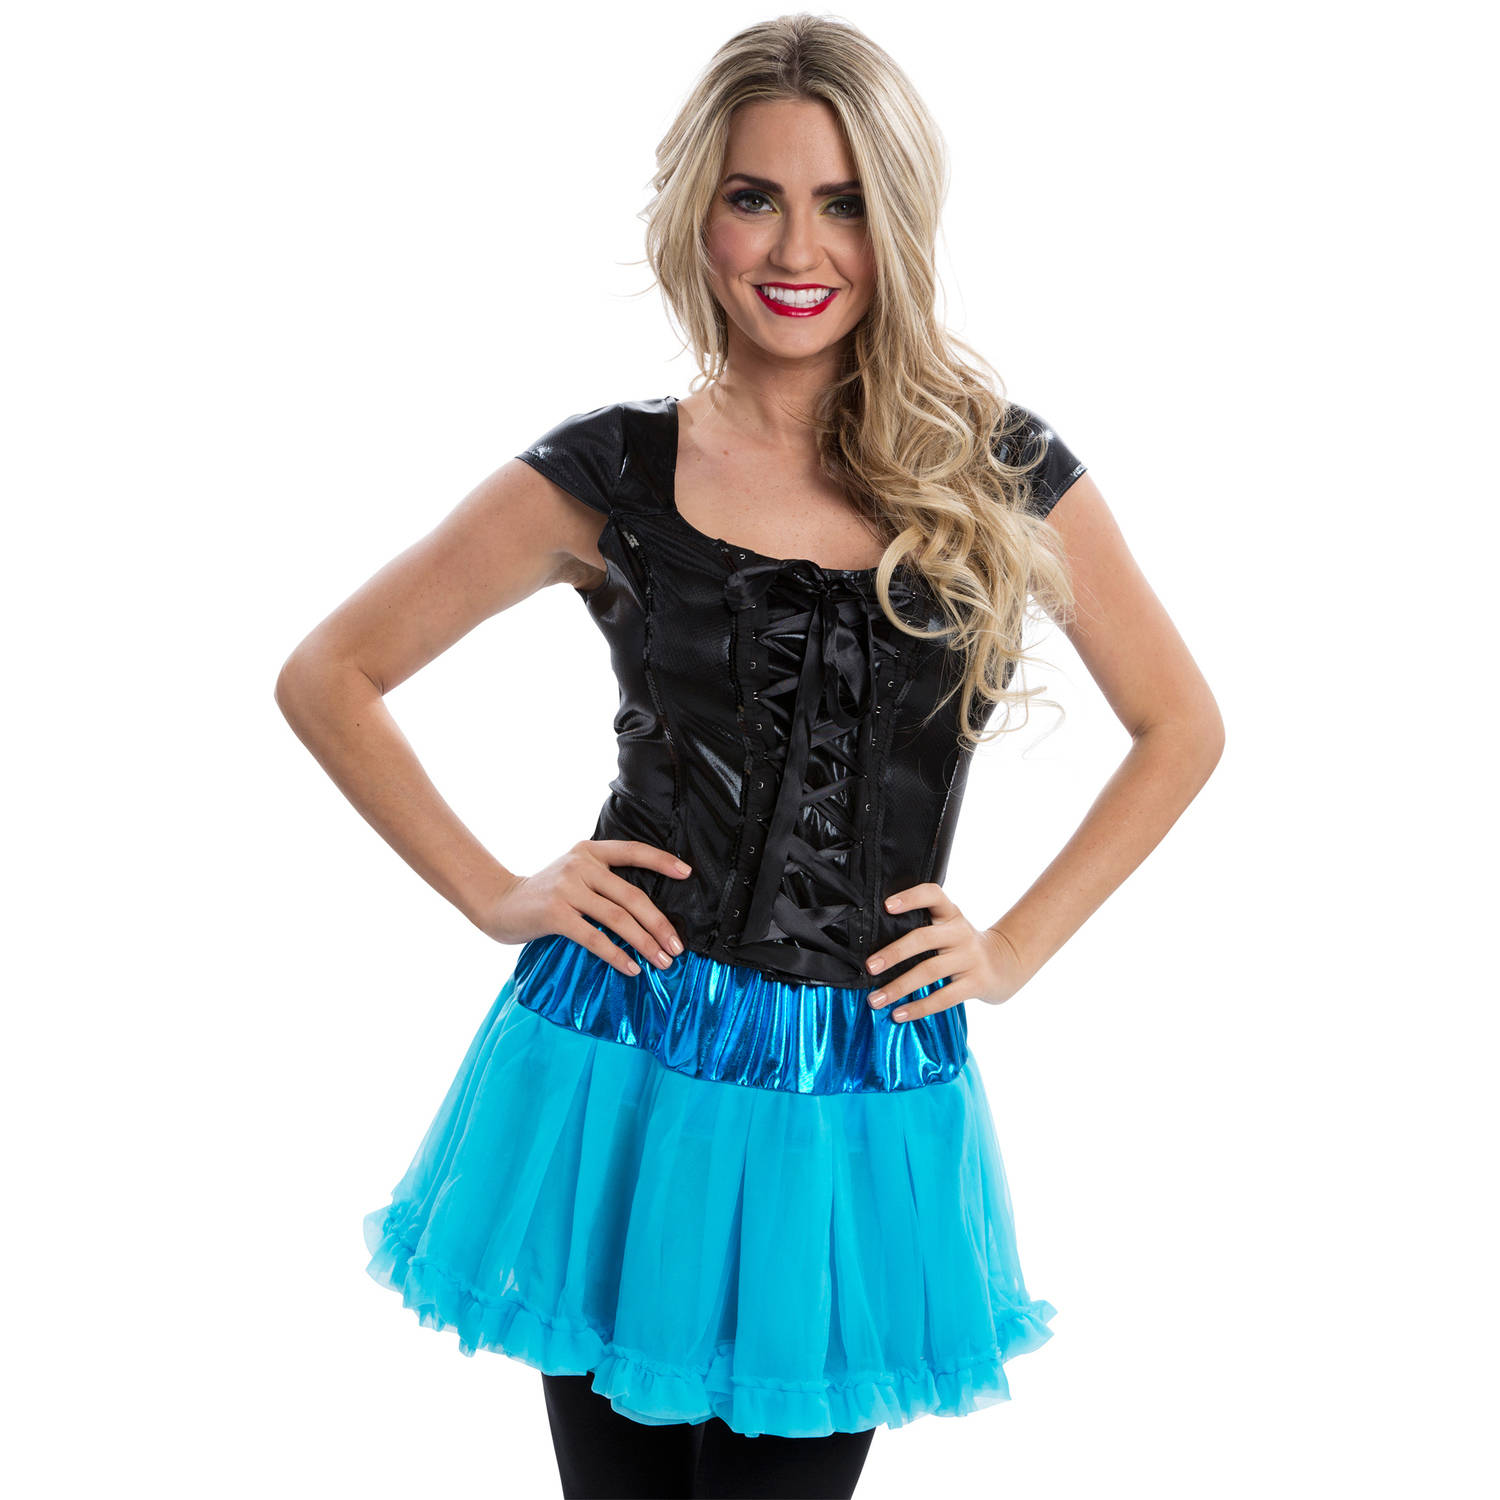 Lace-Up Black Top Women's Adult Halloween Dress Up / Role Play Costume